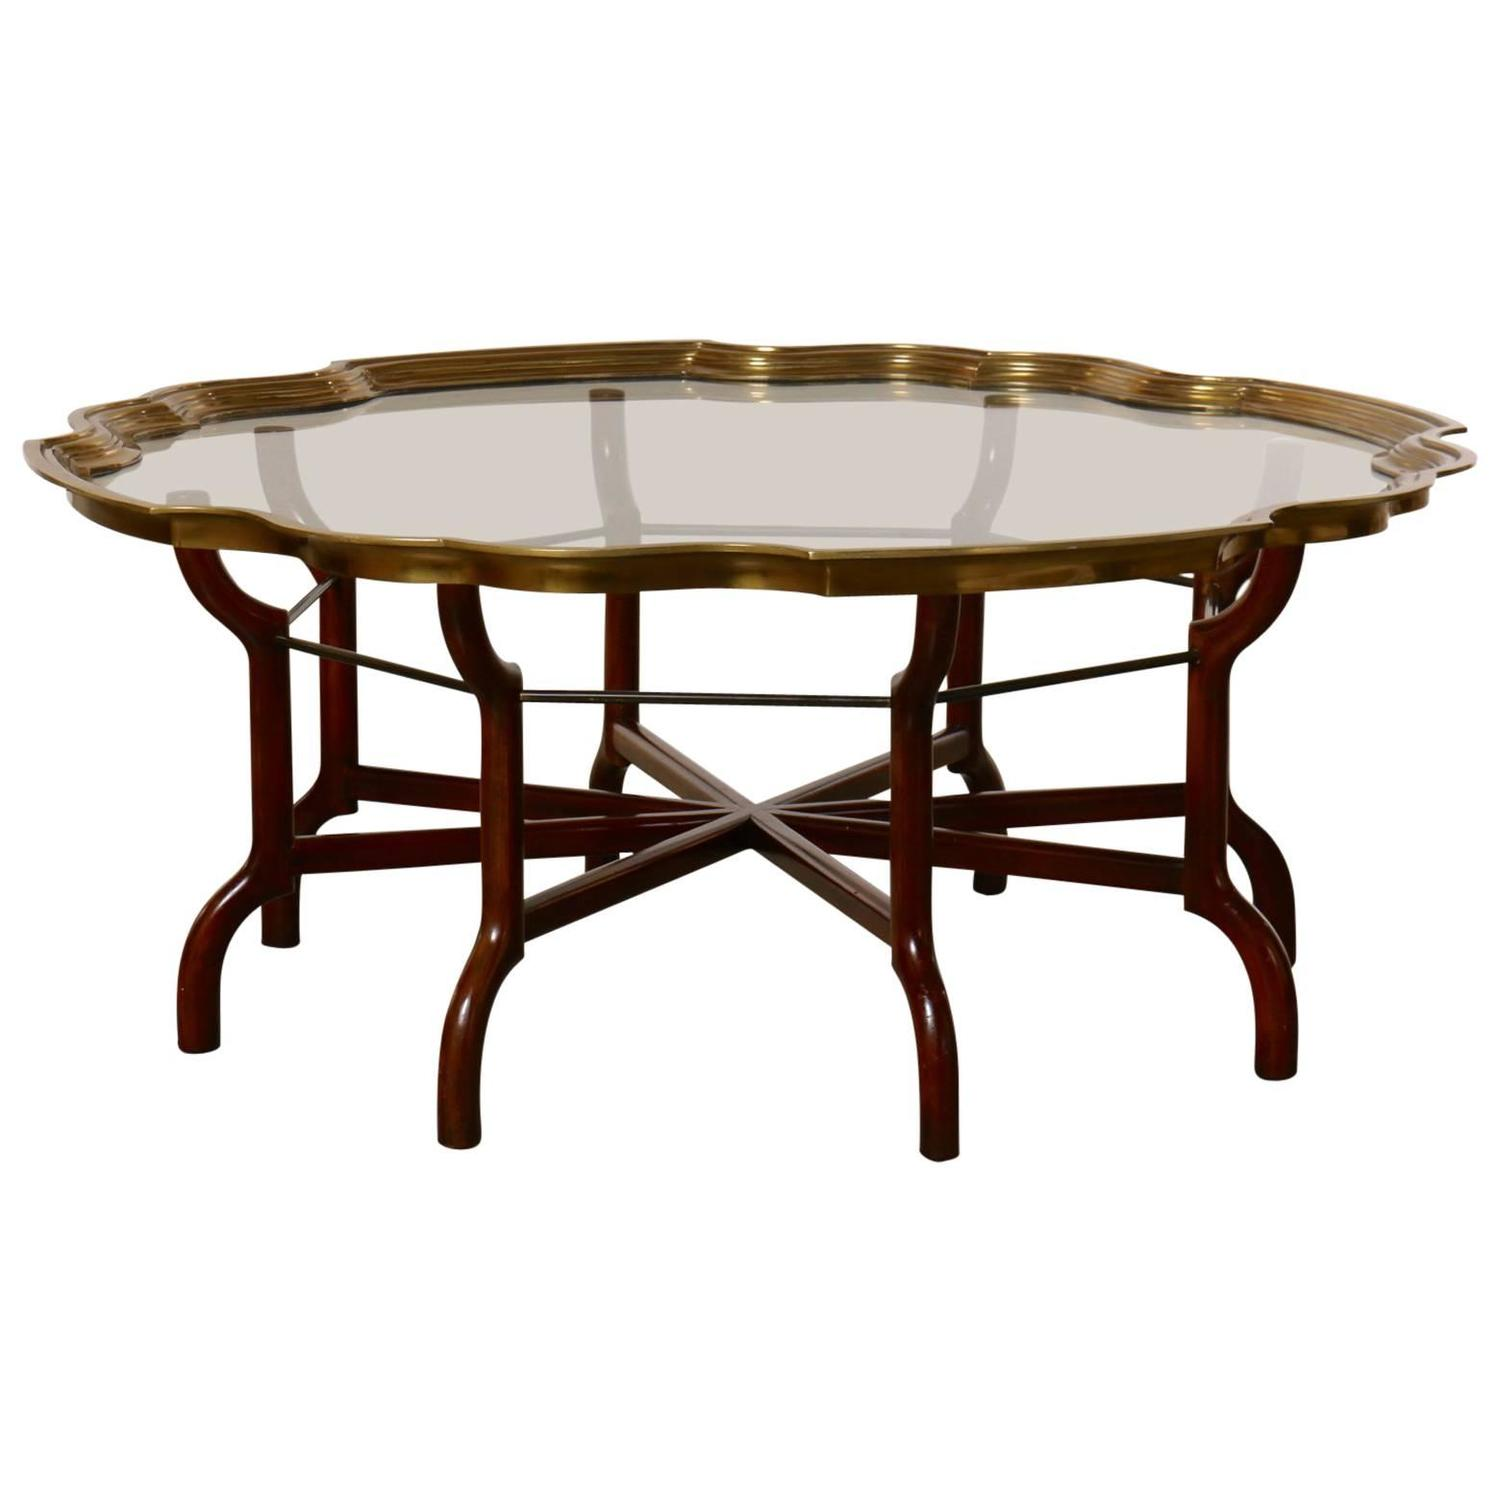 Baker Coffee Table Round: Beautiful Baker Brass And Glass Round Tray Top Coffee